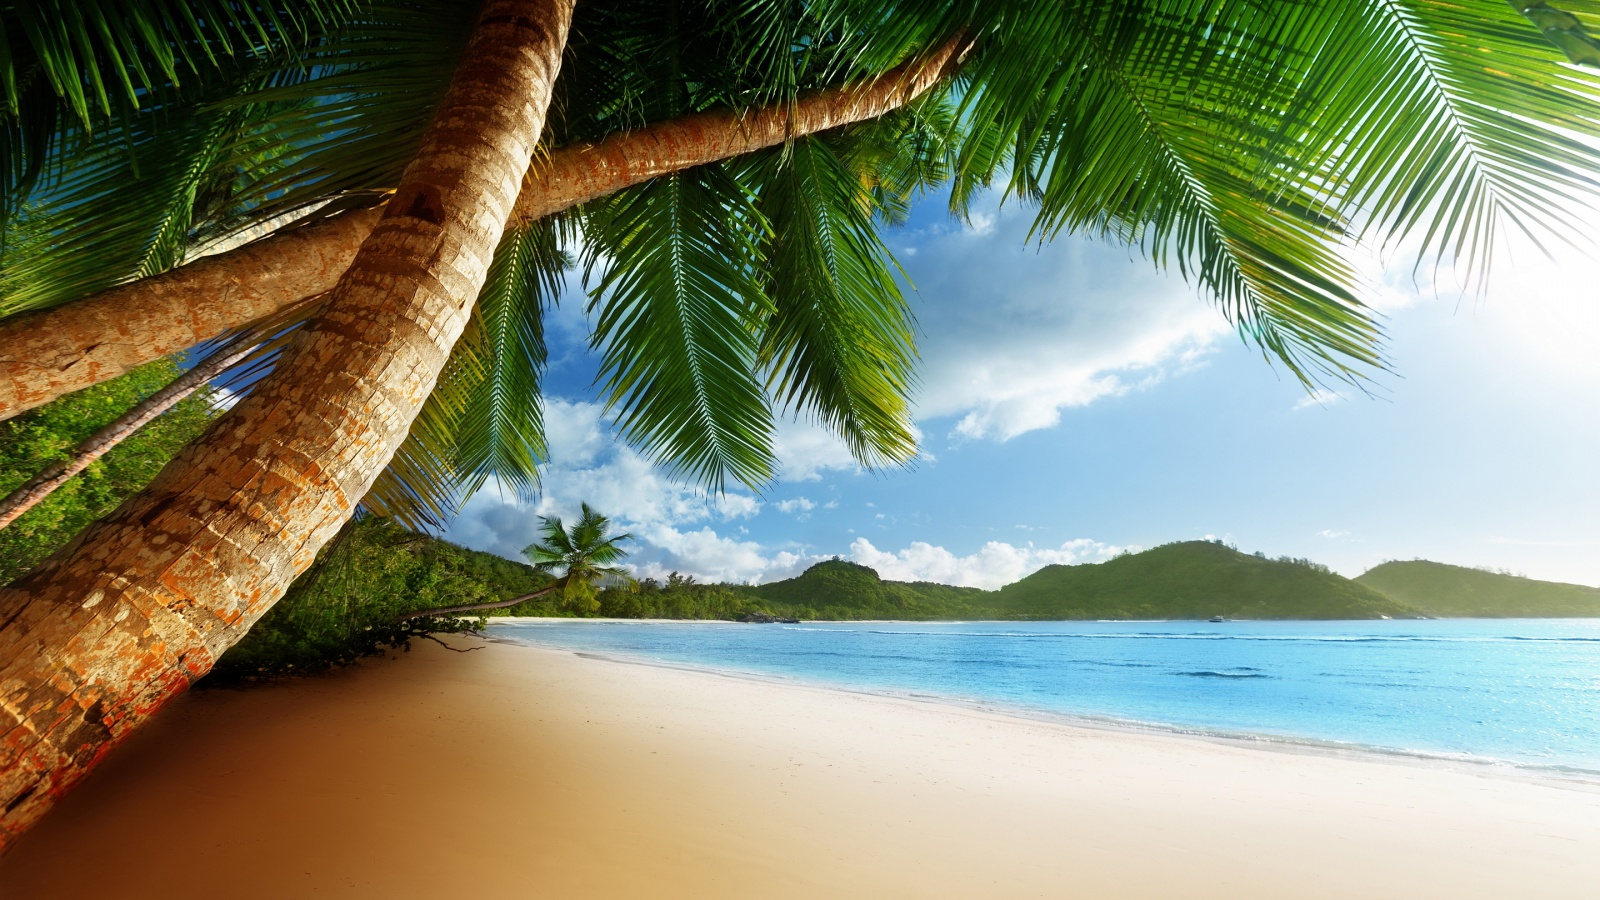 Beach caribbean Wallpaper in 1600x900 HD Resolutions